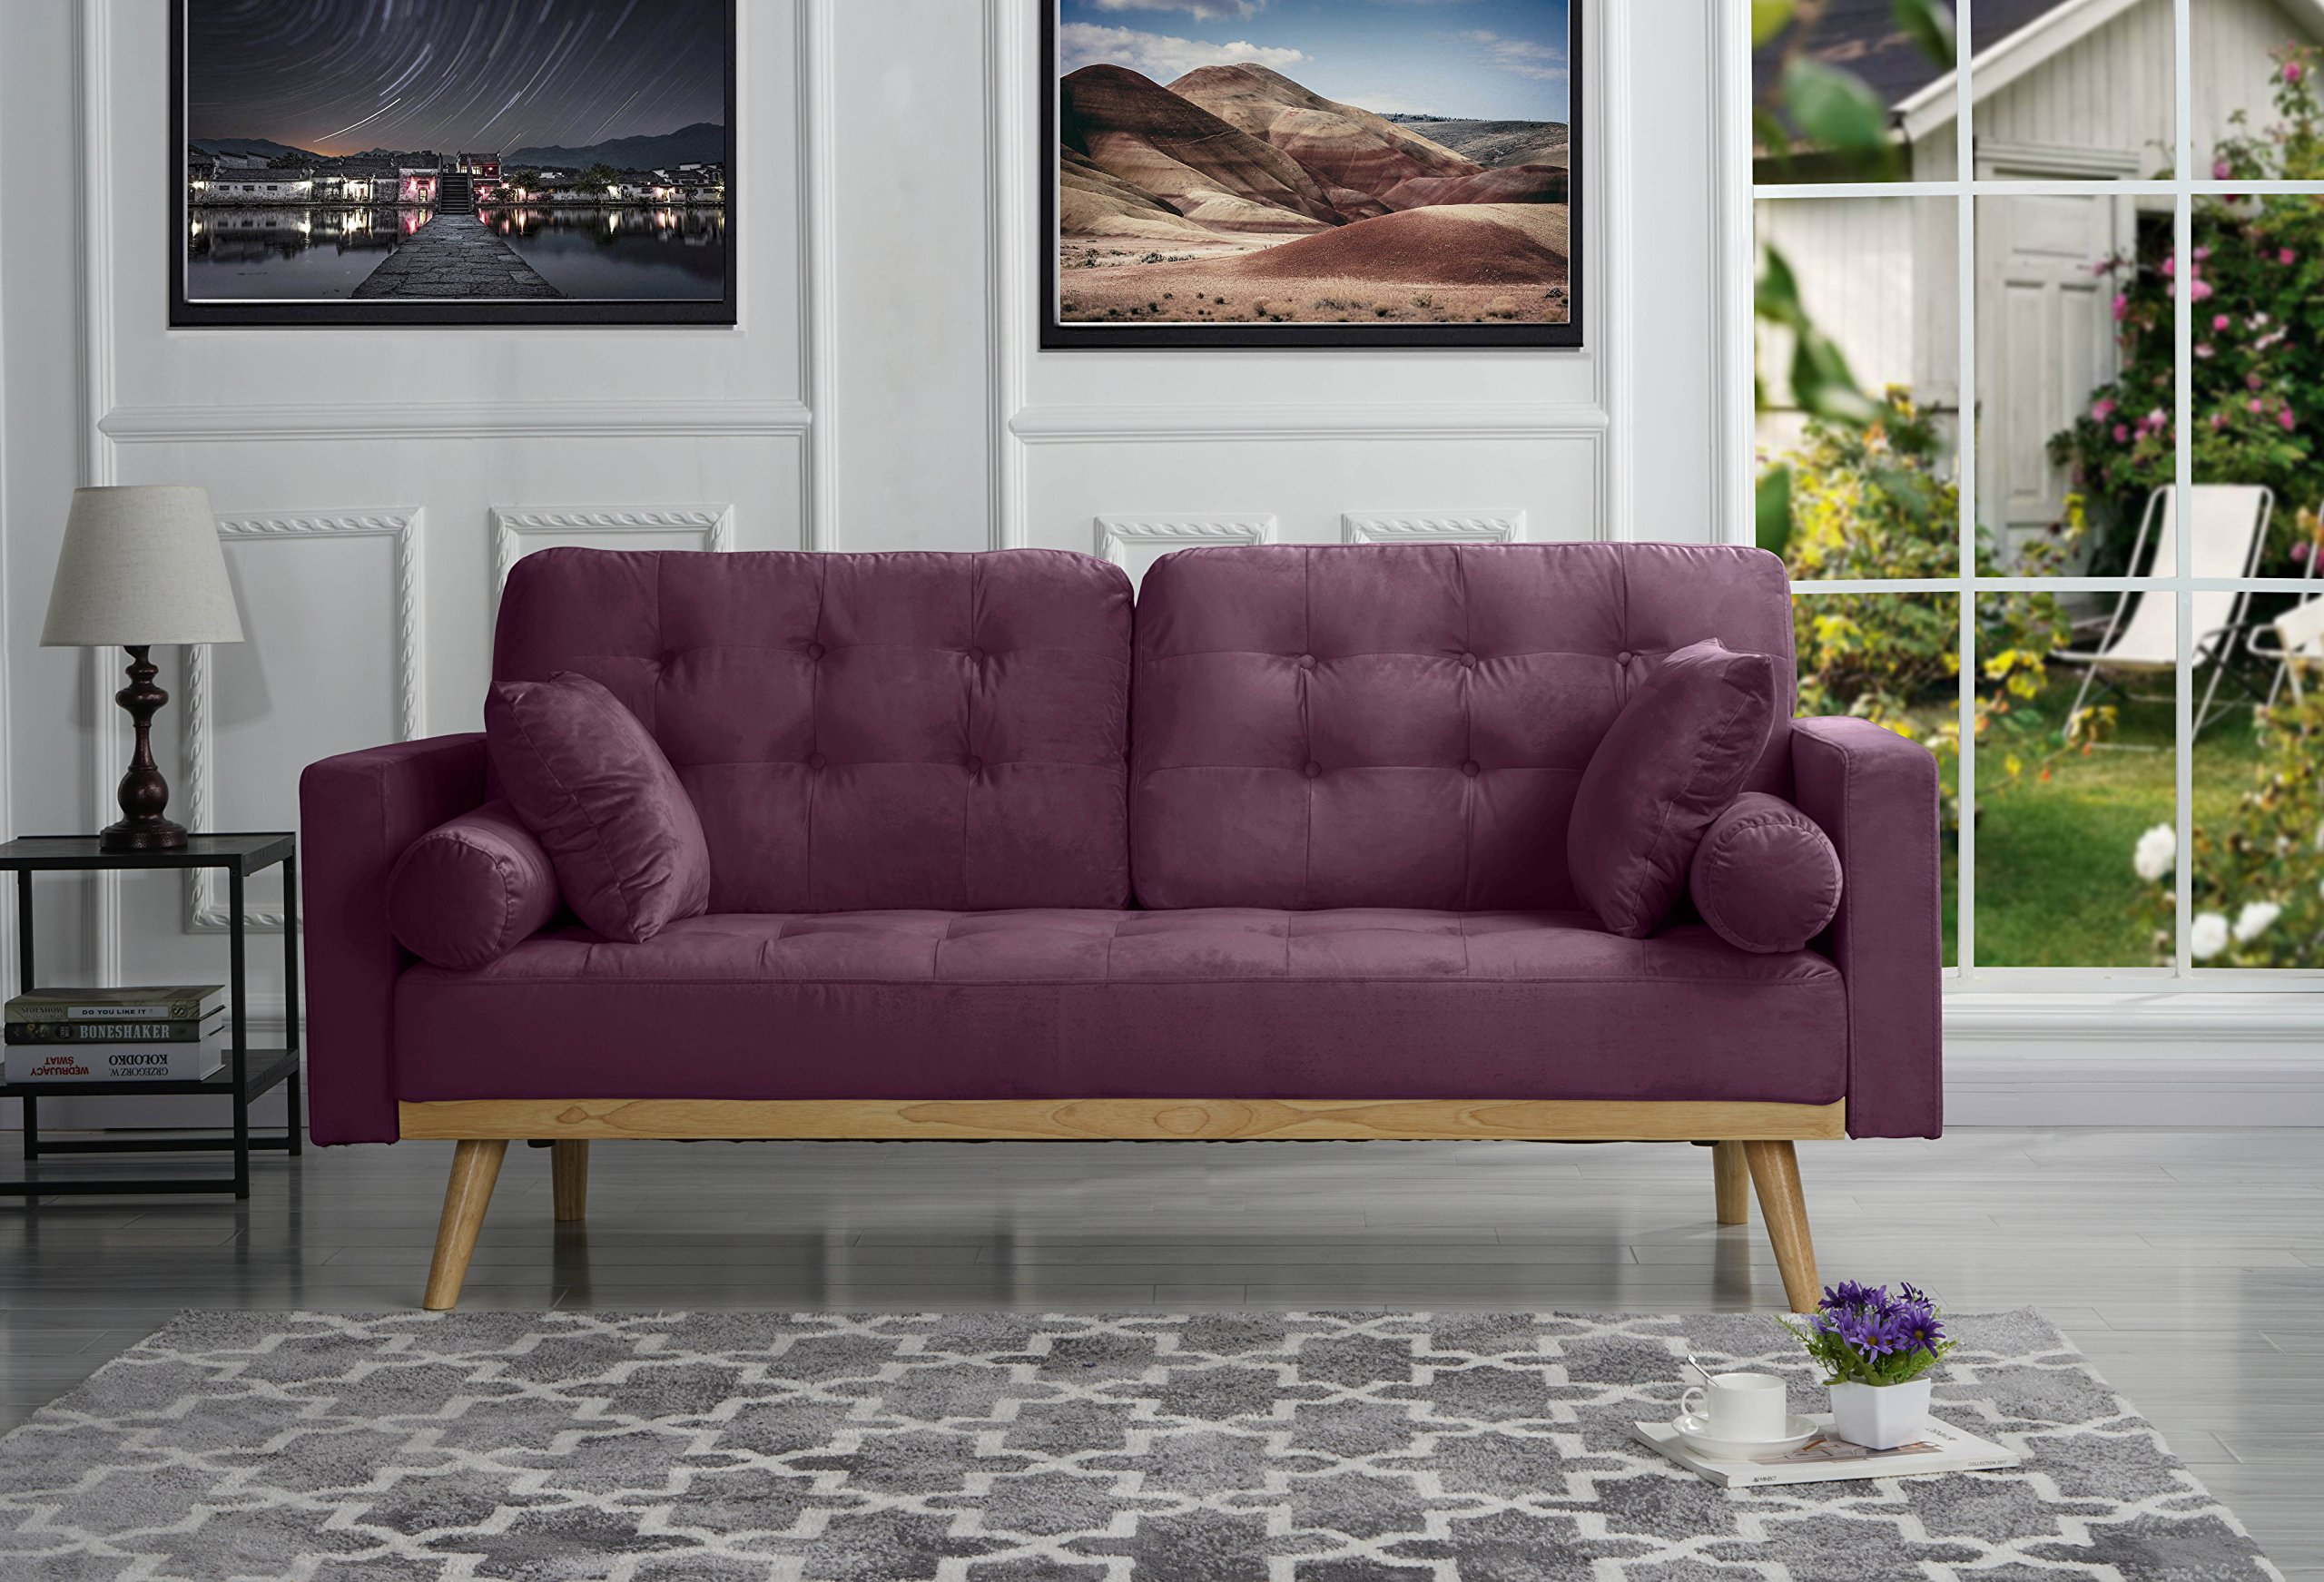 Sofamania Mid-Century Sofas, Purple - Modern mid century sofa in various colors - Includes 2 bolster side pillows and 2 square pillows in the same fabric Soft hand picked velvet fabric in tufted button design for a touch of sophistication while still giving your living room a modern feel Super comfortable and stylish - this sofa is perfect for a small space and the colors available are sure to fit your home decor. - sofas-couches, living-room-furniture, living-room - 91rxSkwiJOL -